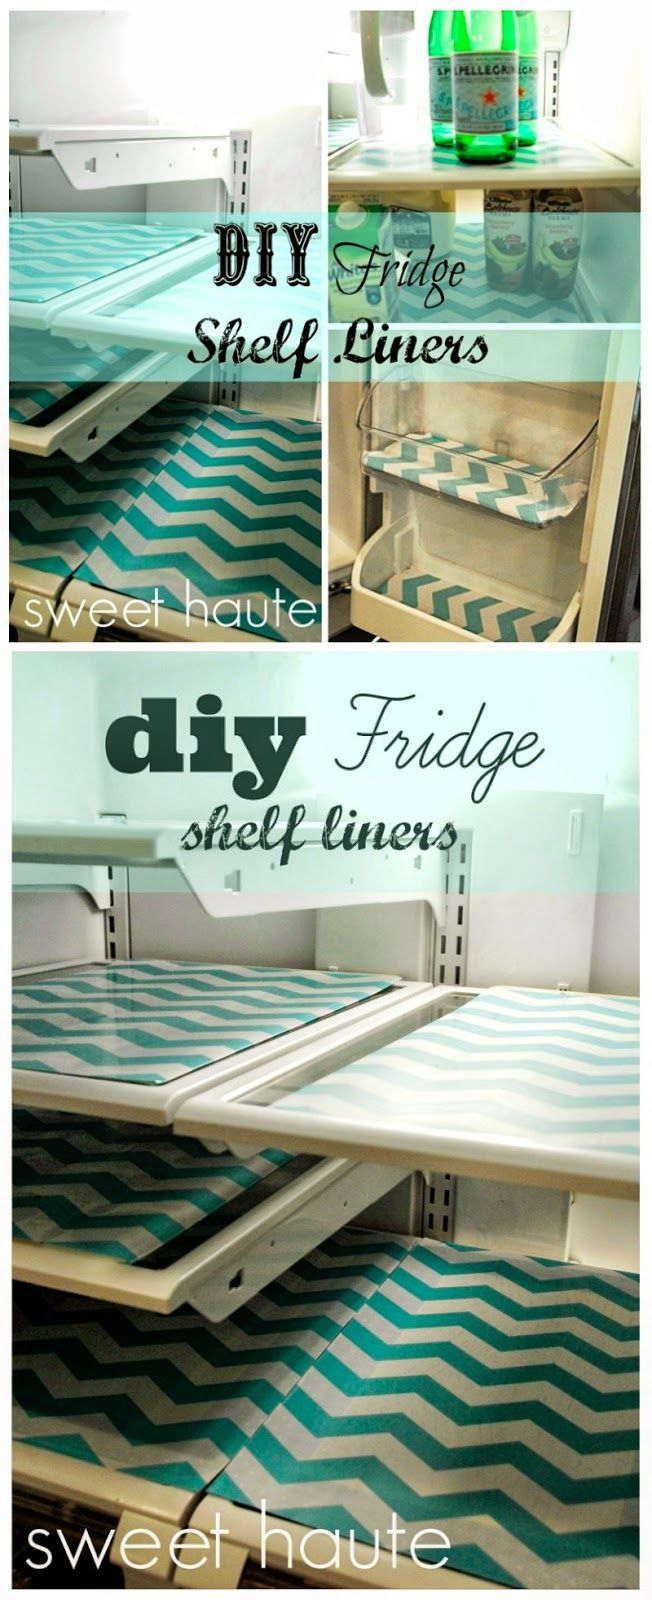 easy diy decor idea craft refrigerator shelf liners tutorial- by